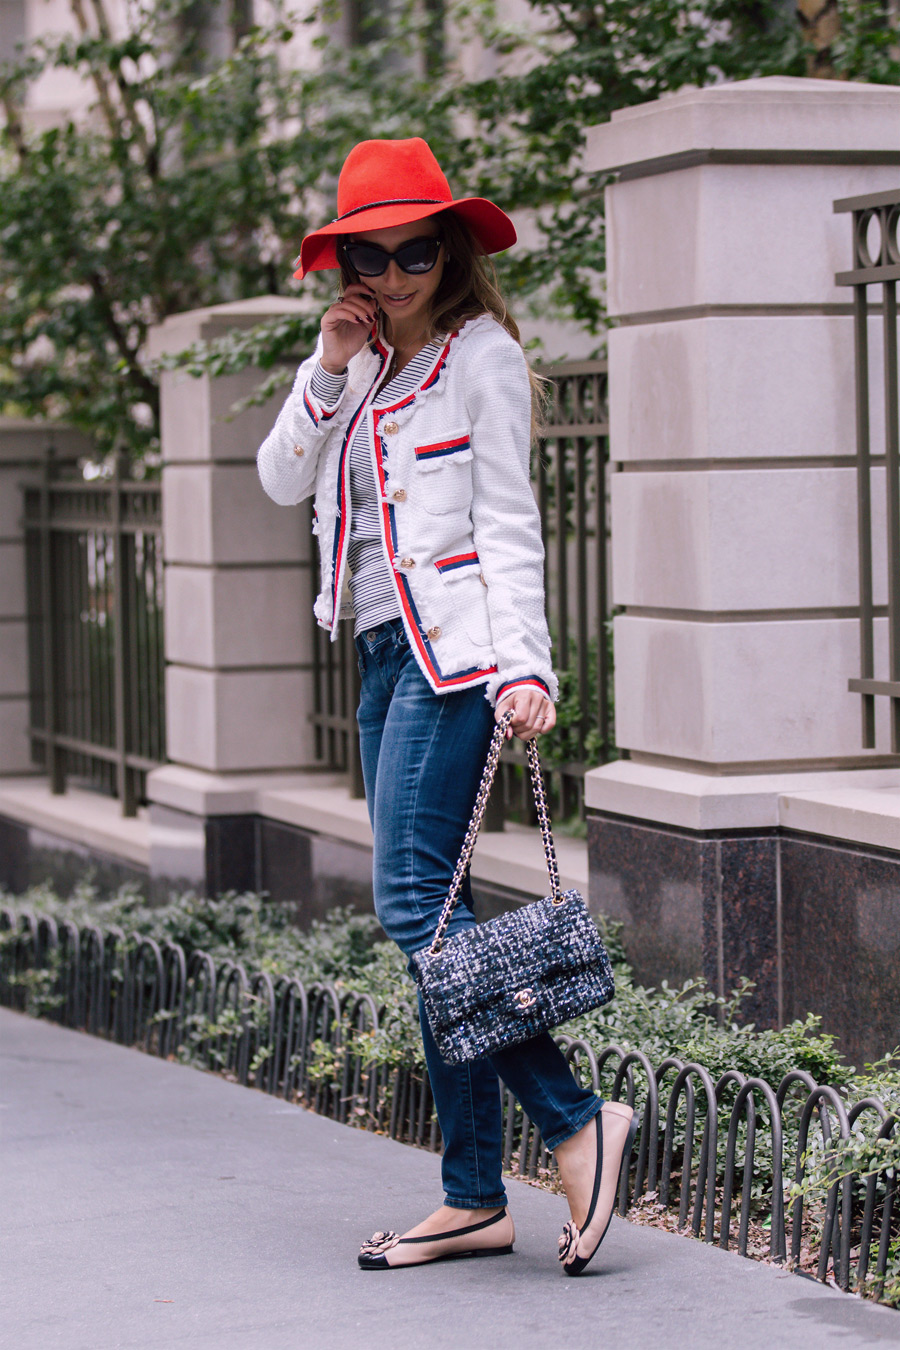 Chanel bag and twee jacket by Make Me Chic. Emilio Pucci red hat for fall 2016. Pretty Ballerinas shoes.